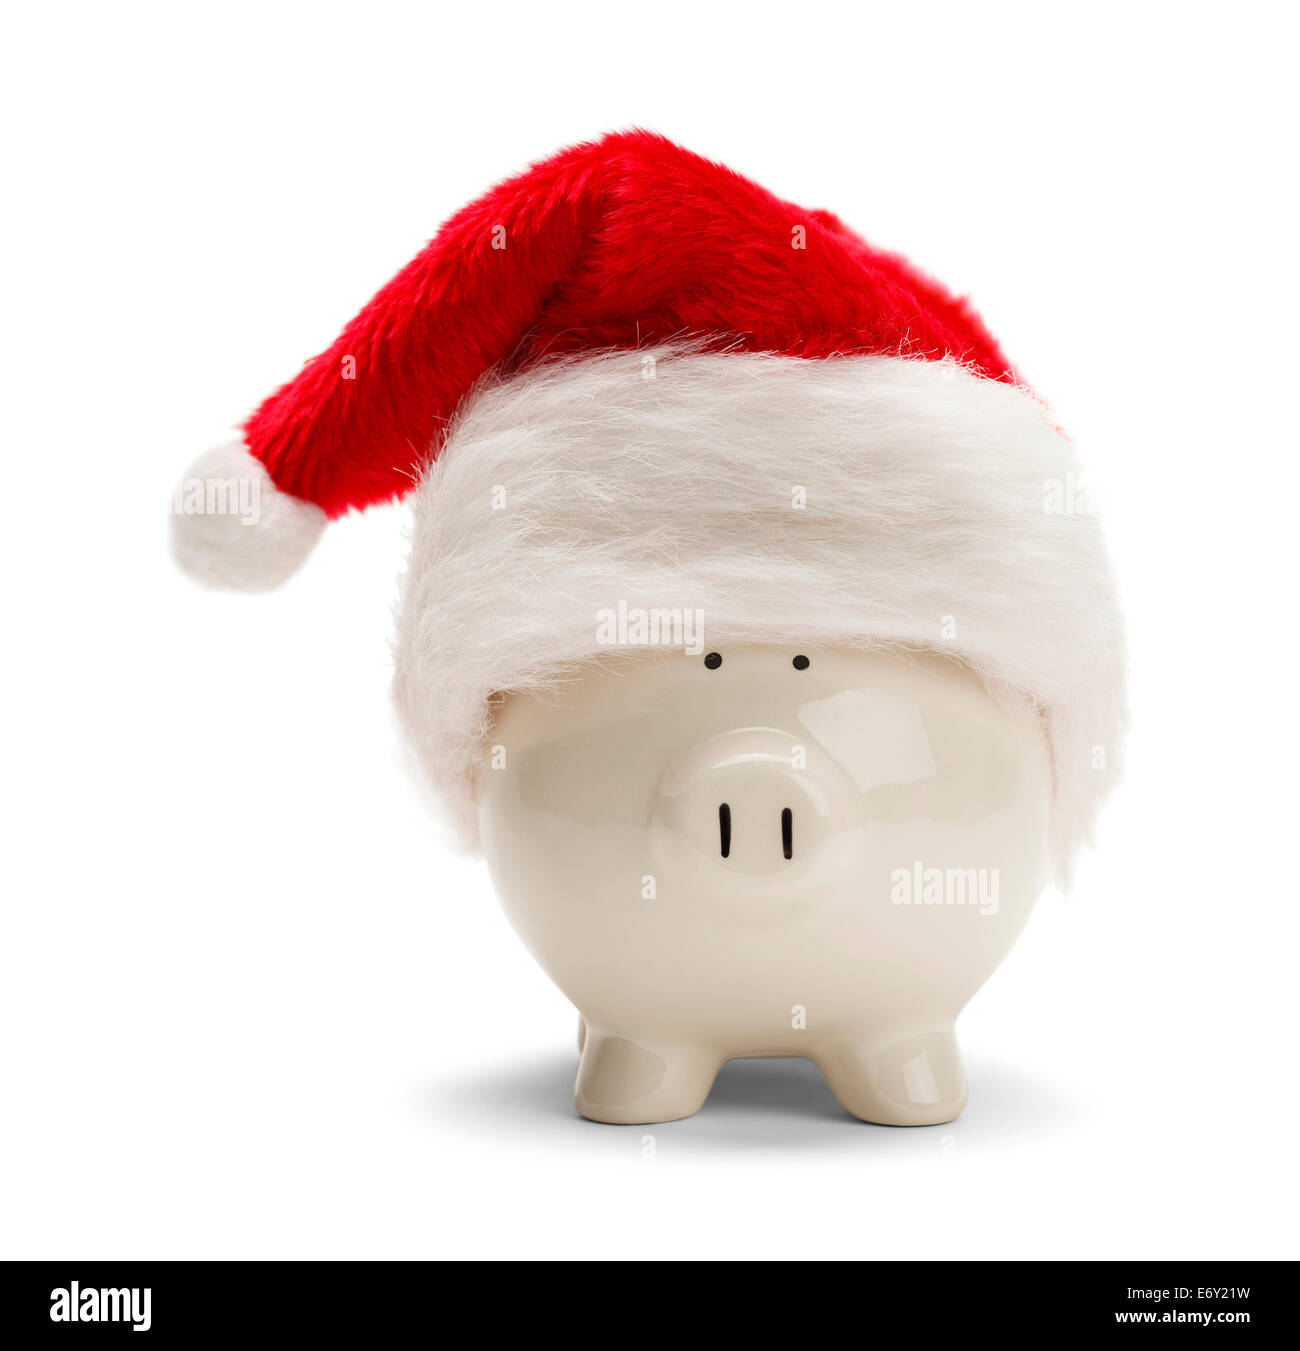 Piggy Bank With Red Santa Hat Isolated on White Background. - Stock Image